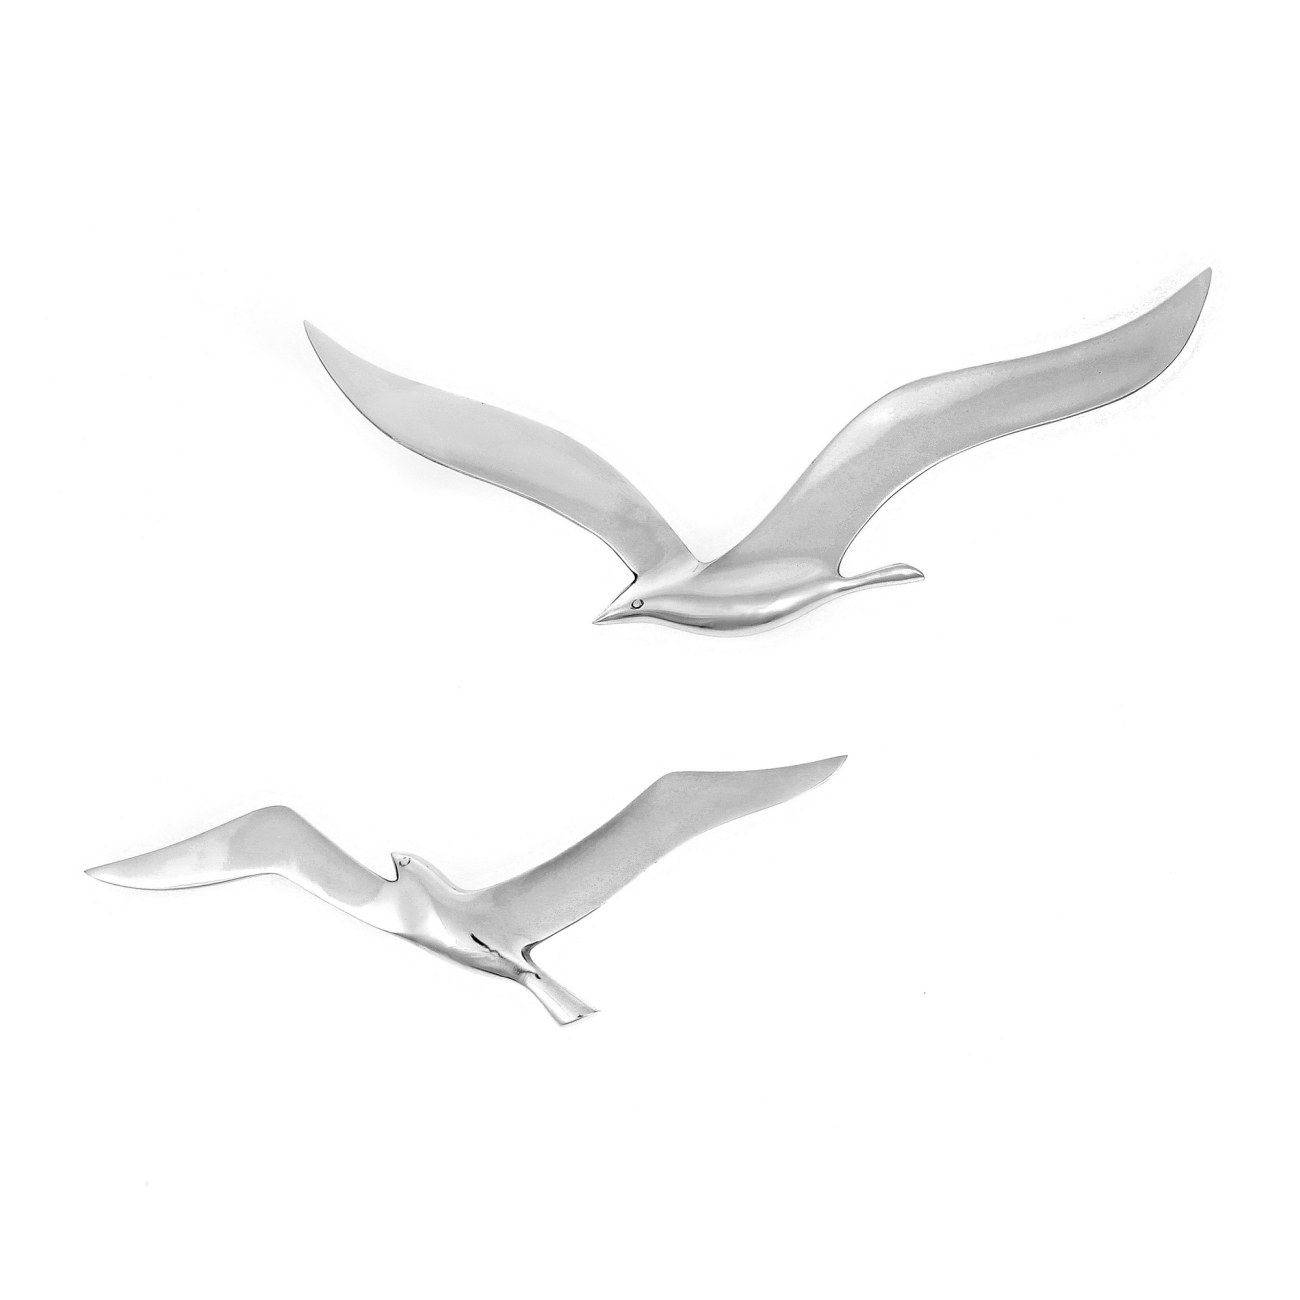 Seagull Bird – Handmade Metal Wall Art Decor – Silver, Small 27Cm With Best And Newest Seagull Metal Wall Art (View 12 of 20)